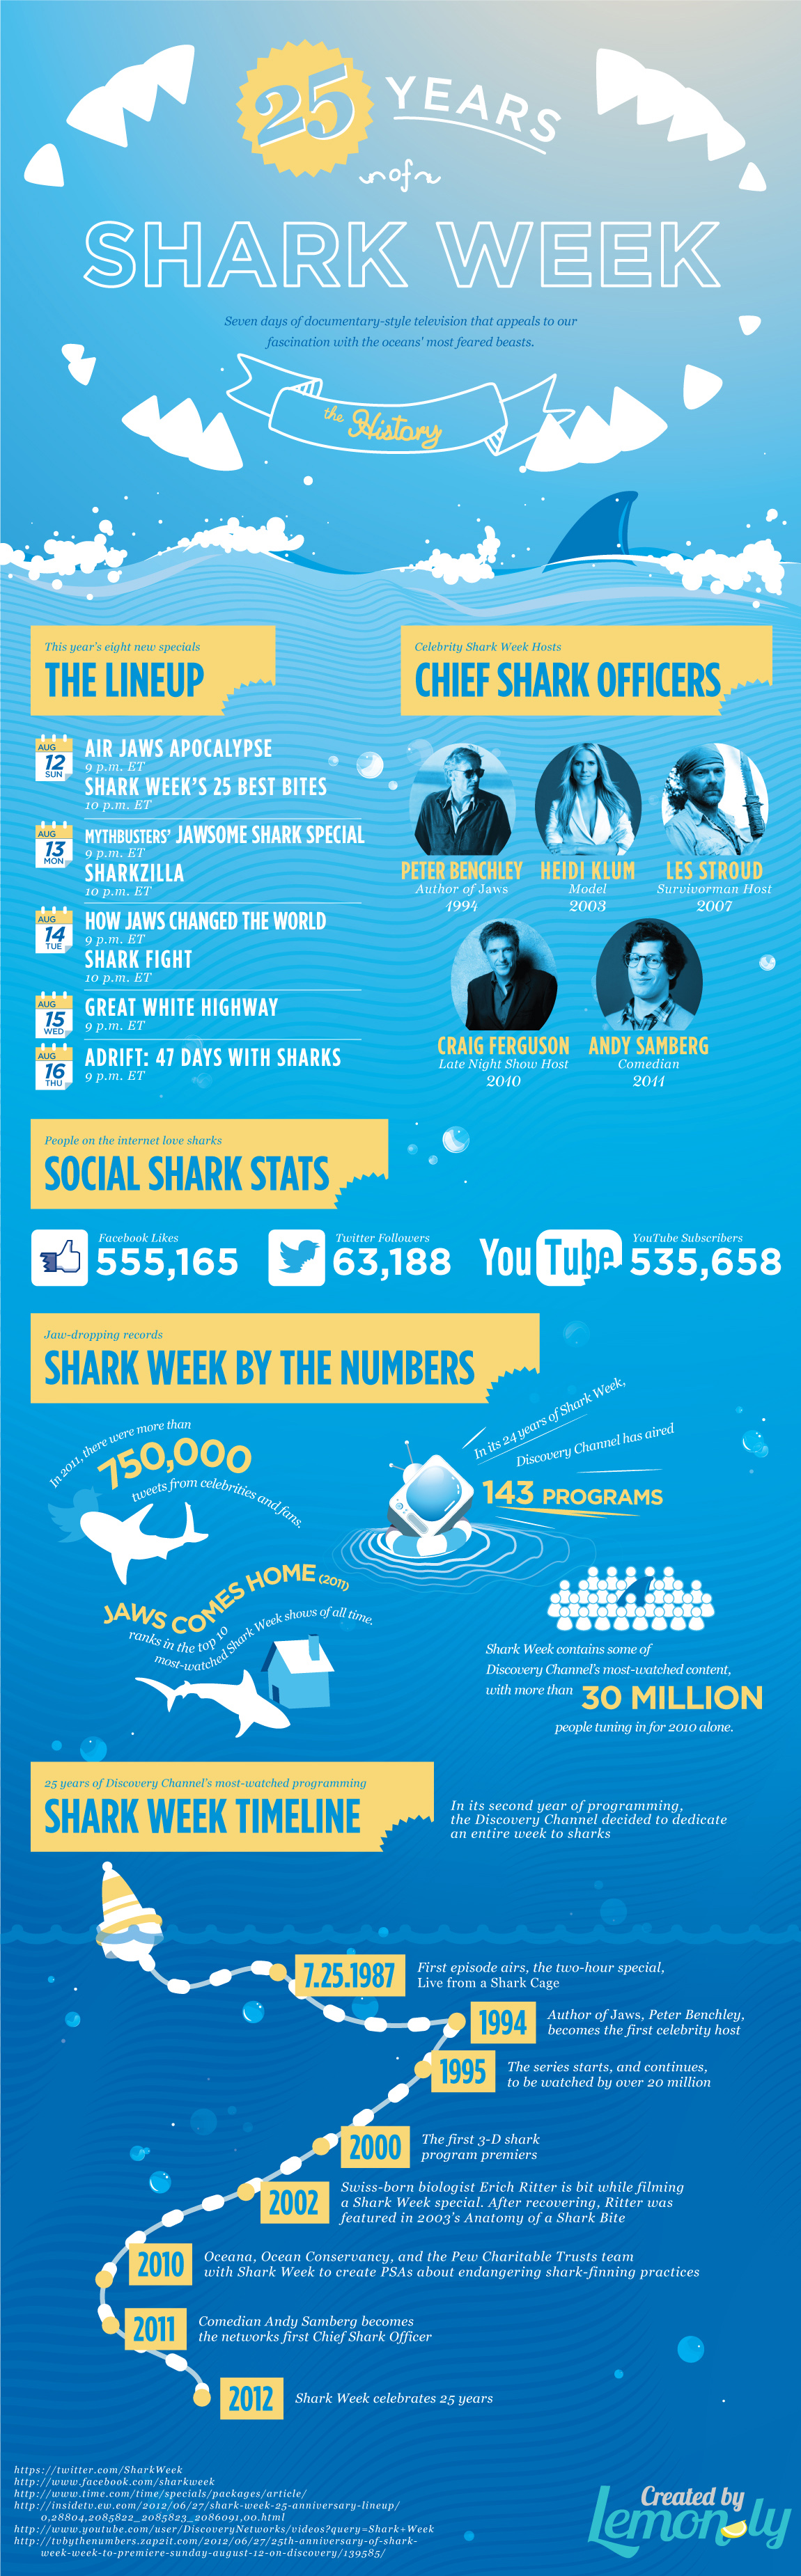 shark week 25 years infographic lemon.ly